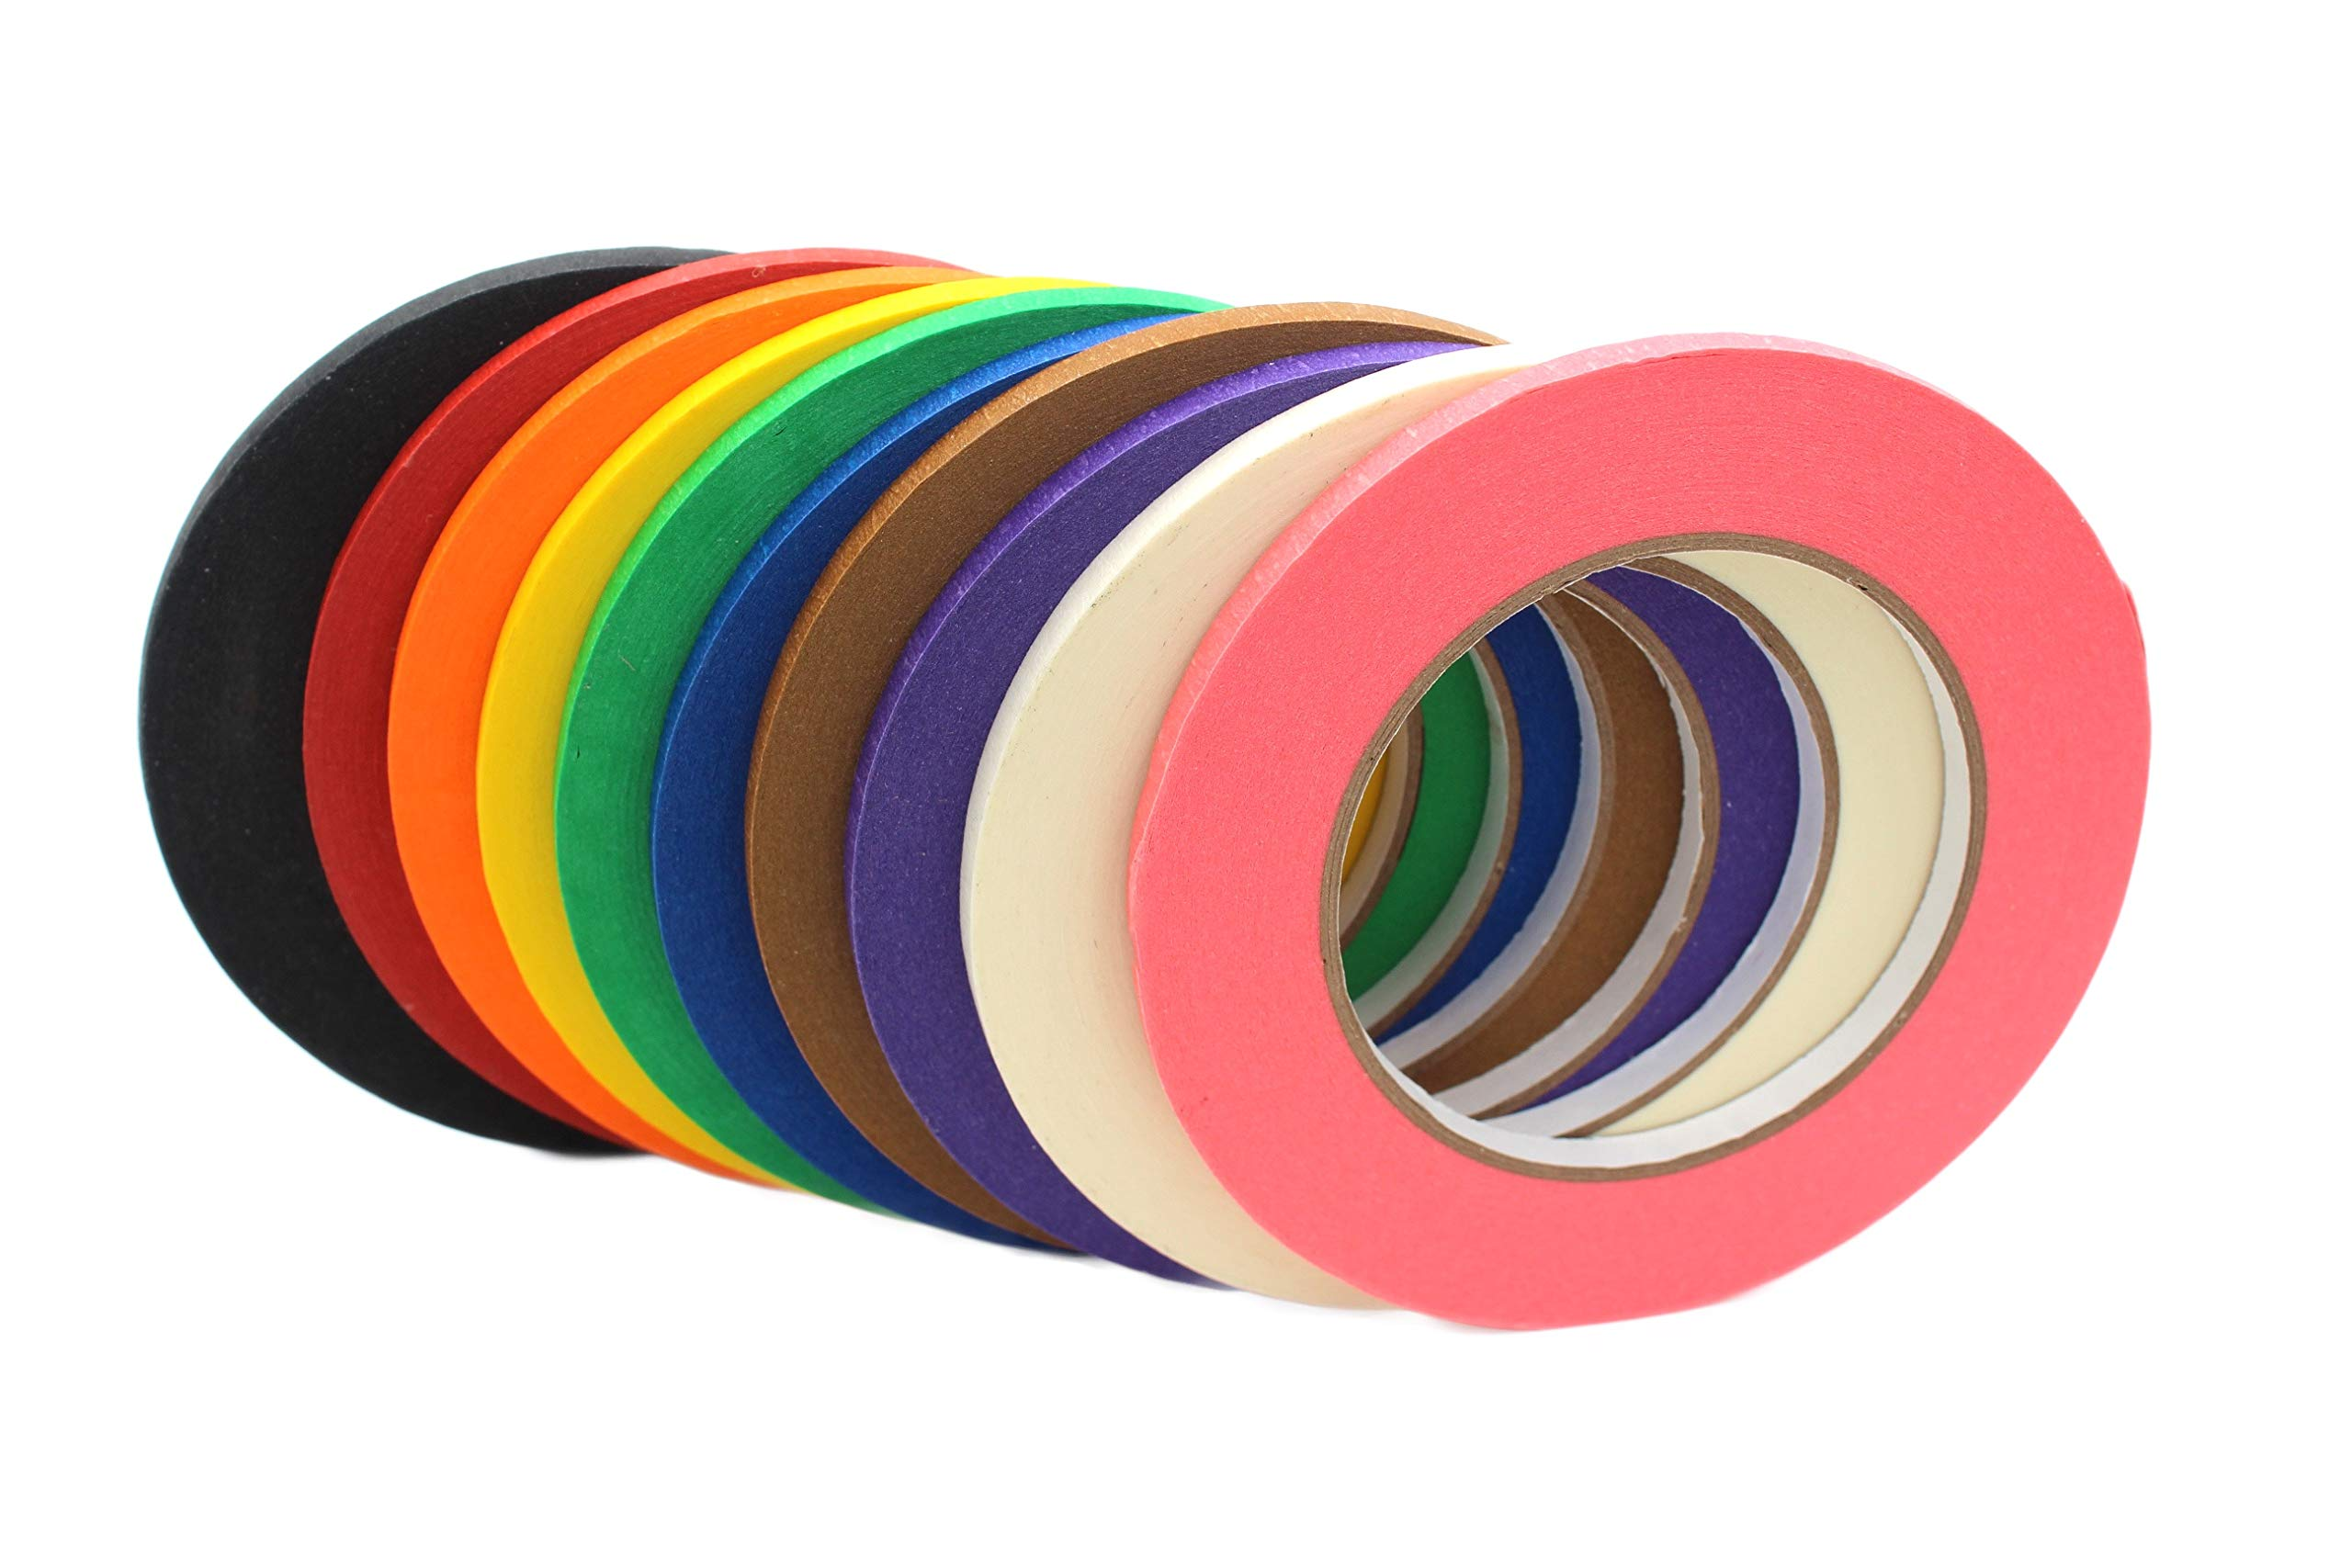 Narrow Colored Masking Tape by BAM! Tape   Arts and Crafts Tape   STEM Preschool   10 Colors 600 Yards by 1/4 Inch   Kids Art Supplies and Crafting Kit